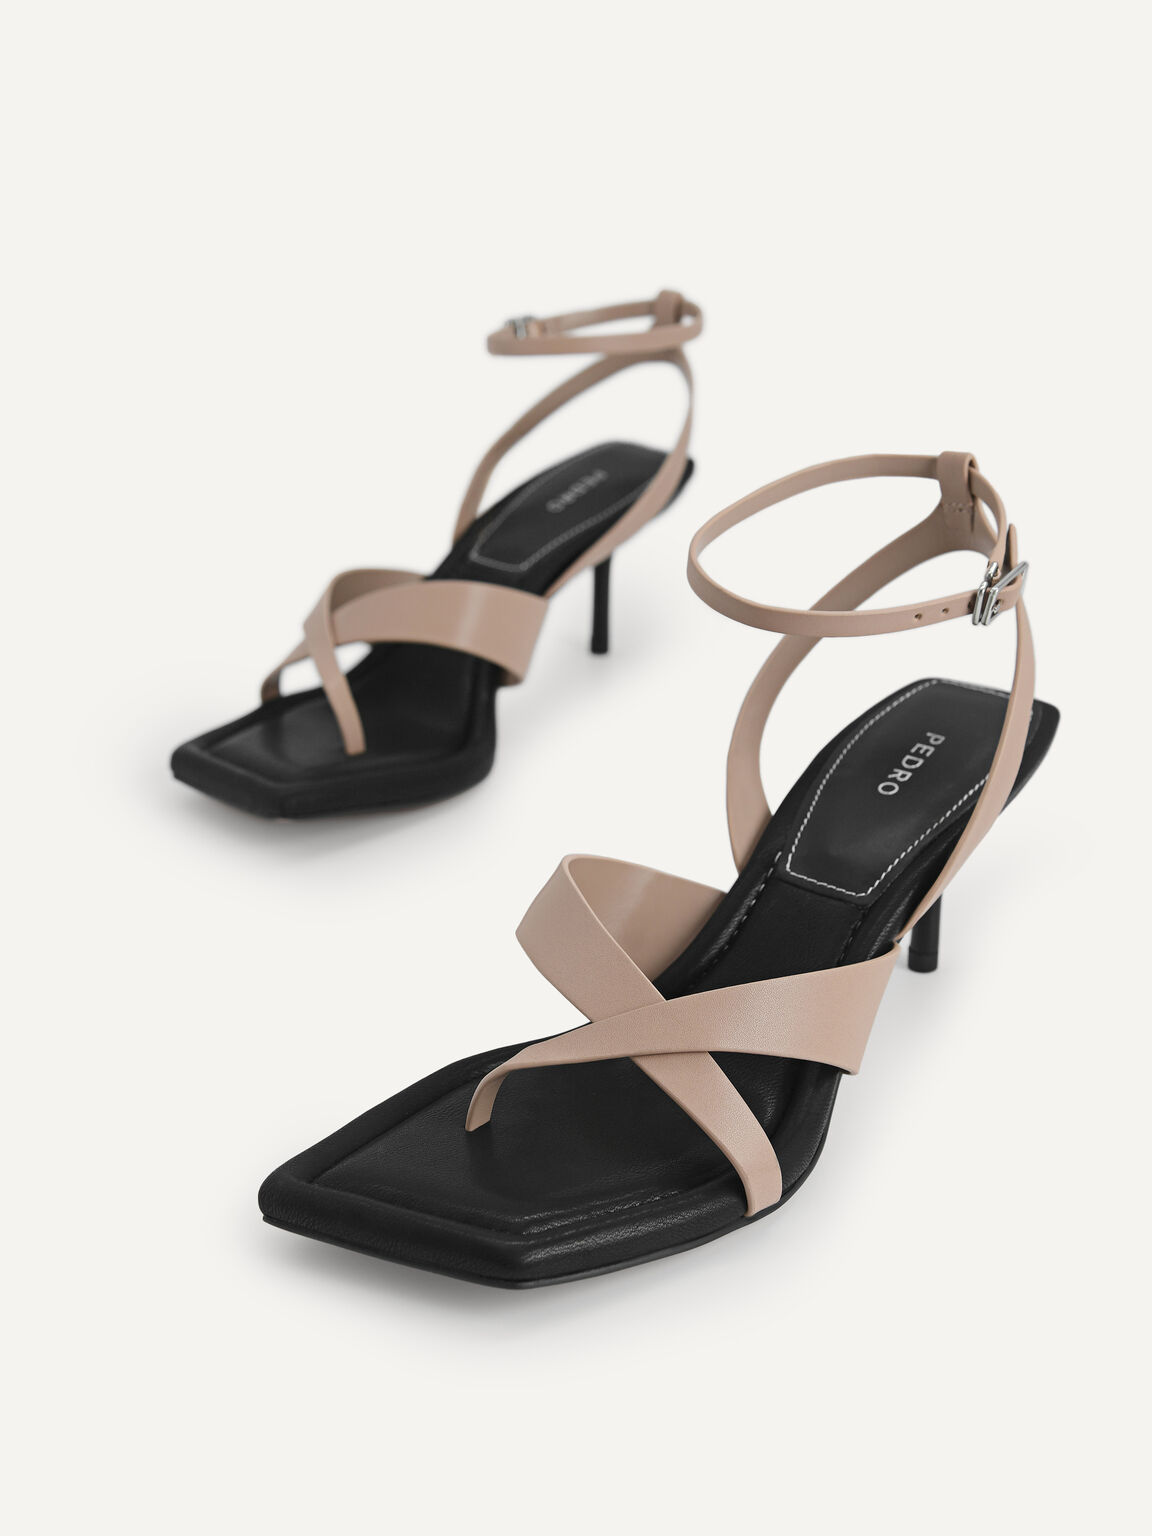 Strappy Square-Toe Heeled Sandals, Taupe, hi-res